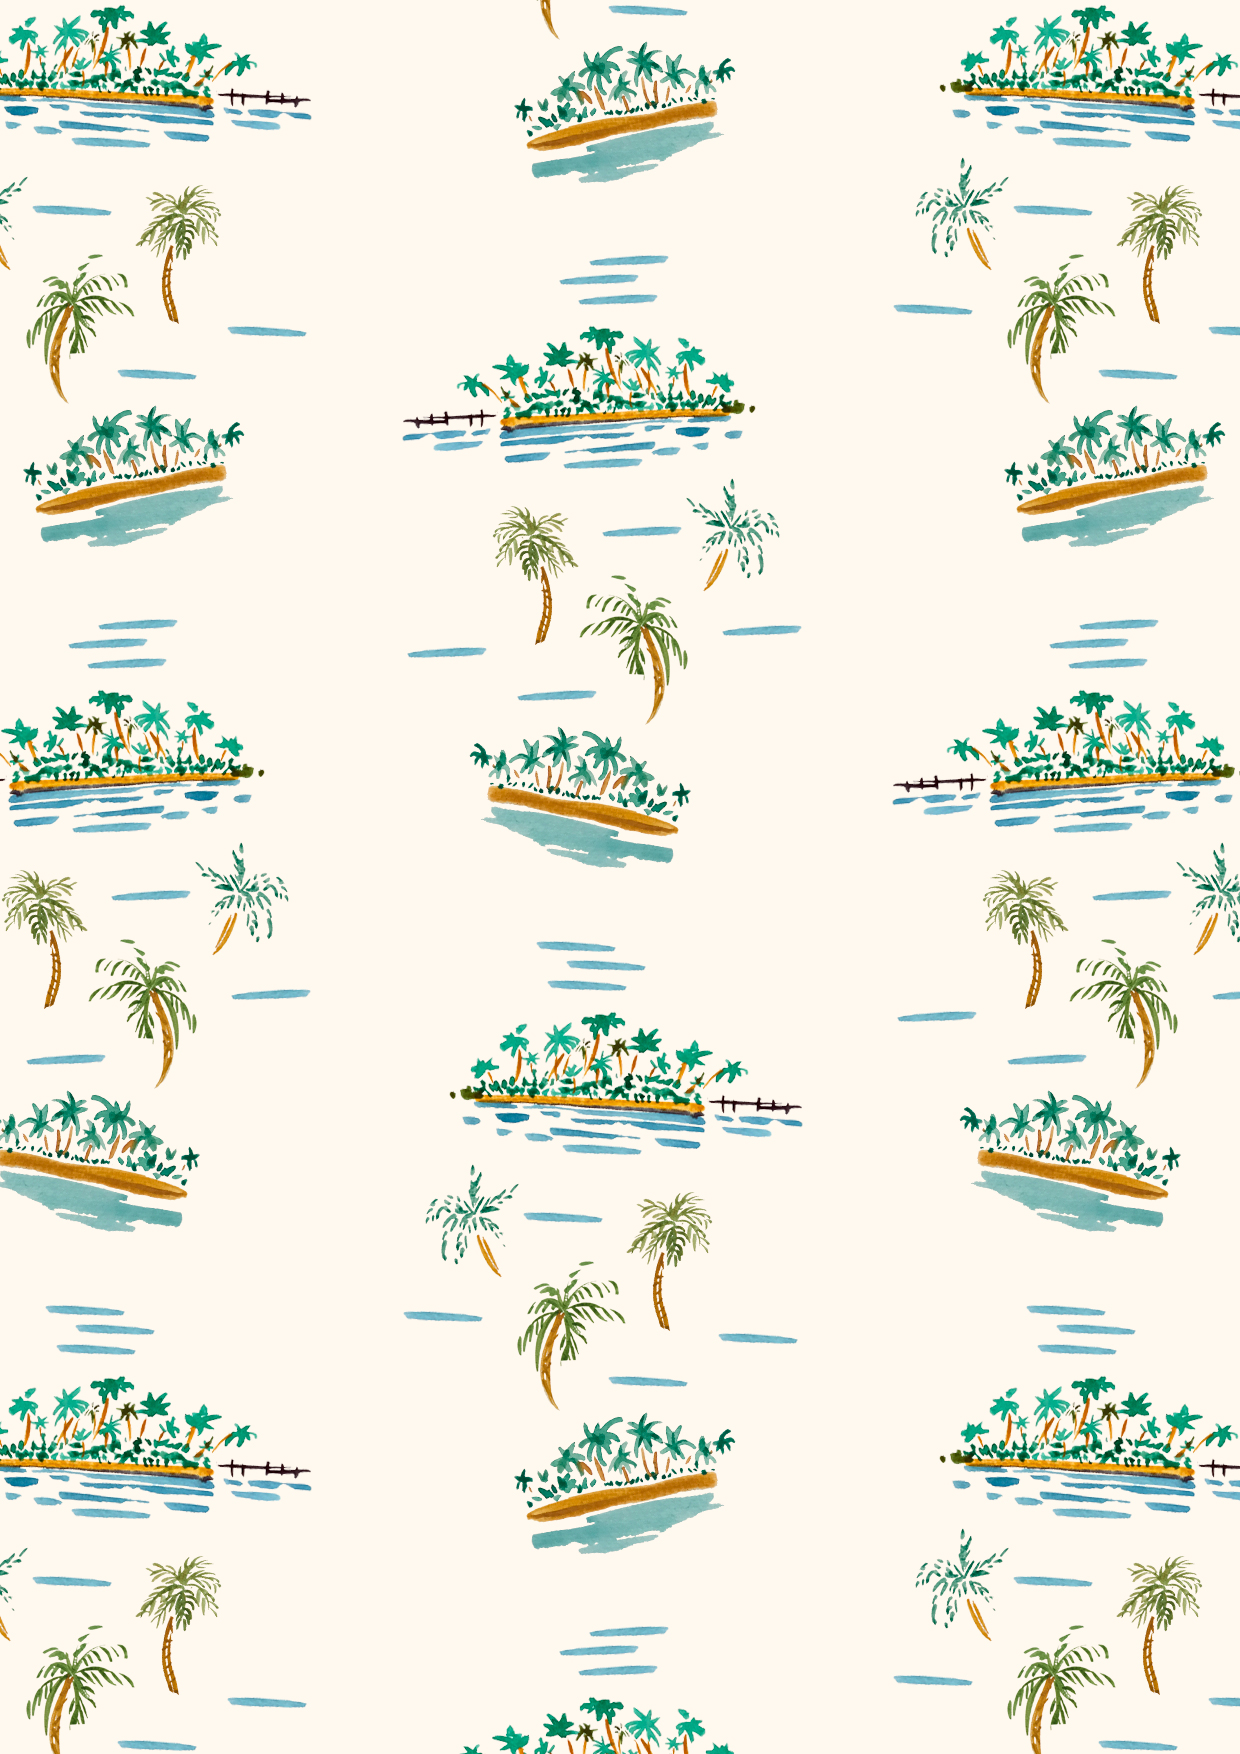 Diane Cunnington - fashion illustration and textile design. THE NEW SOCIETY Watercolor tahitian landscape for baby's and kidswear